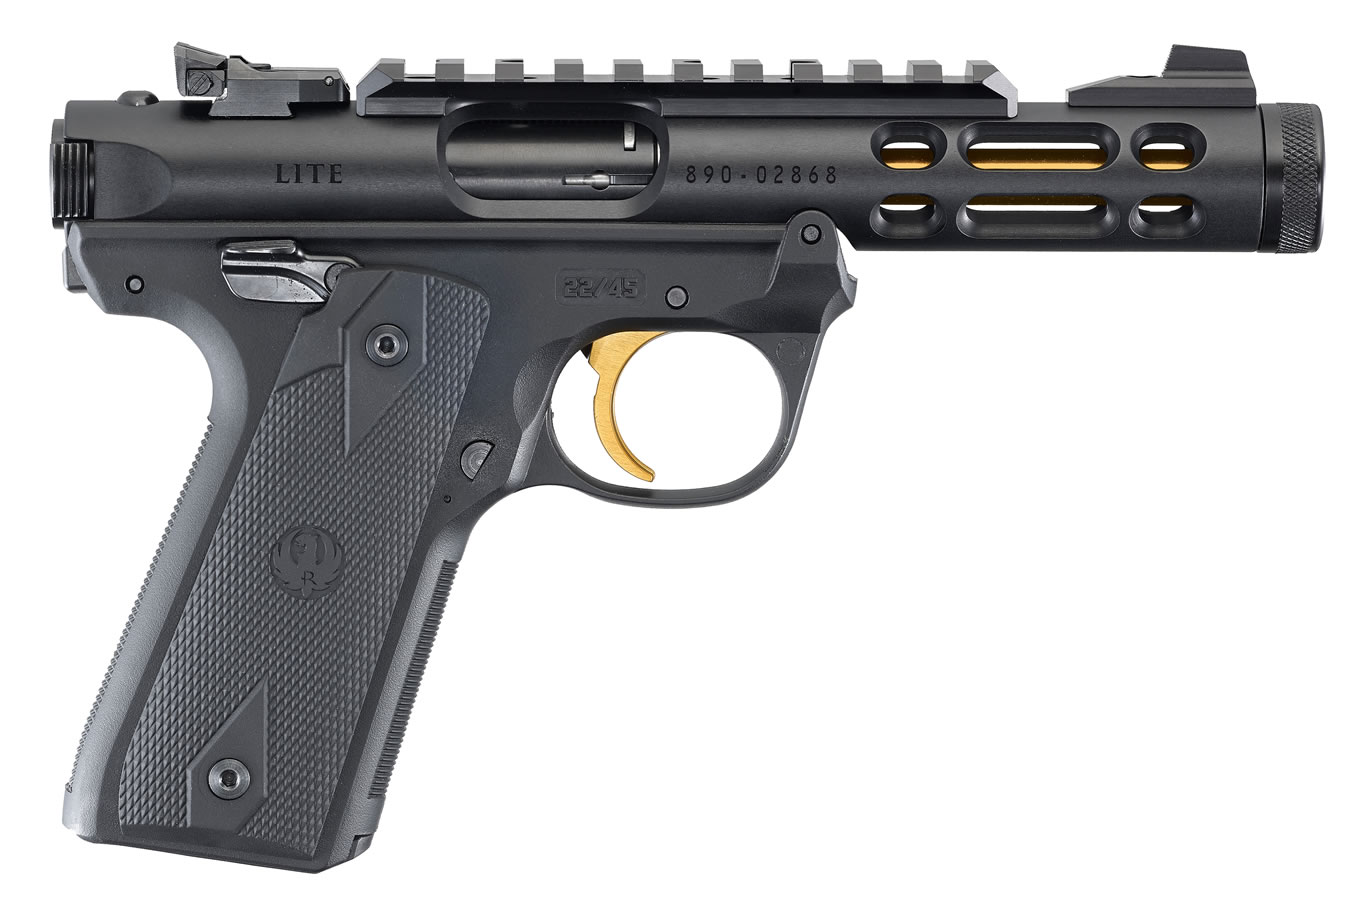 No. 9 Best Selling: RUGER MARK IV 22/45 LITE 22LR BLACK/GOLD ANODIZED